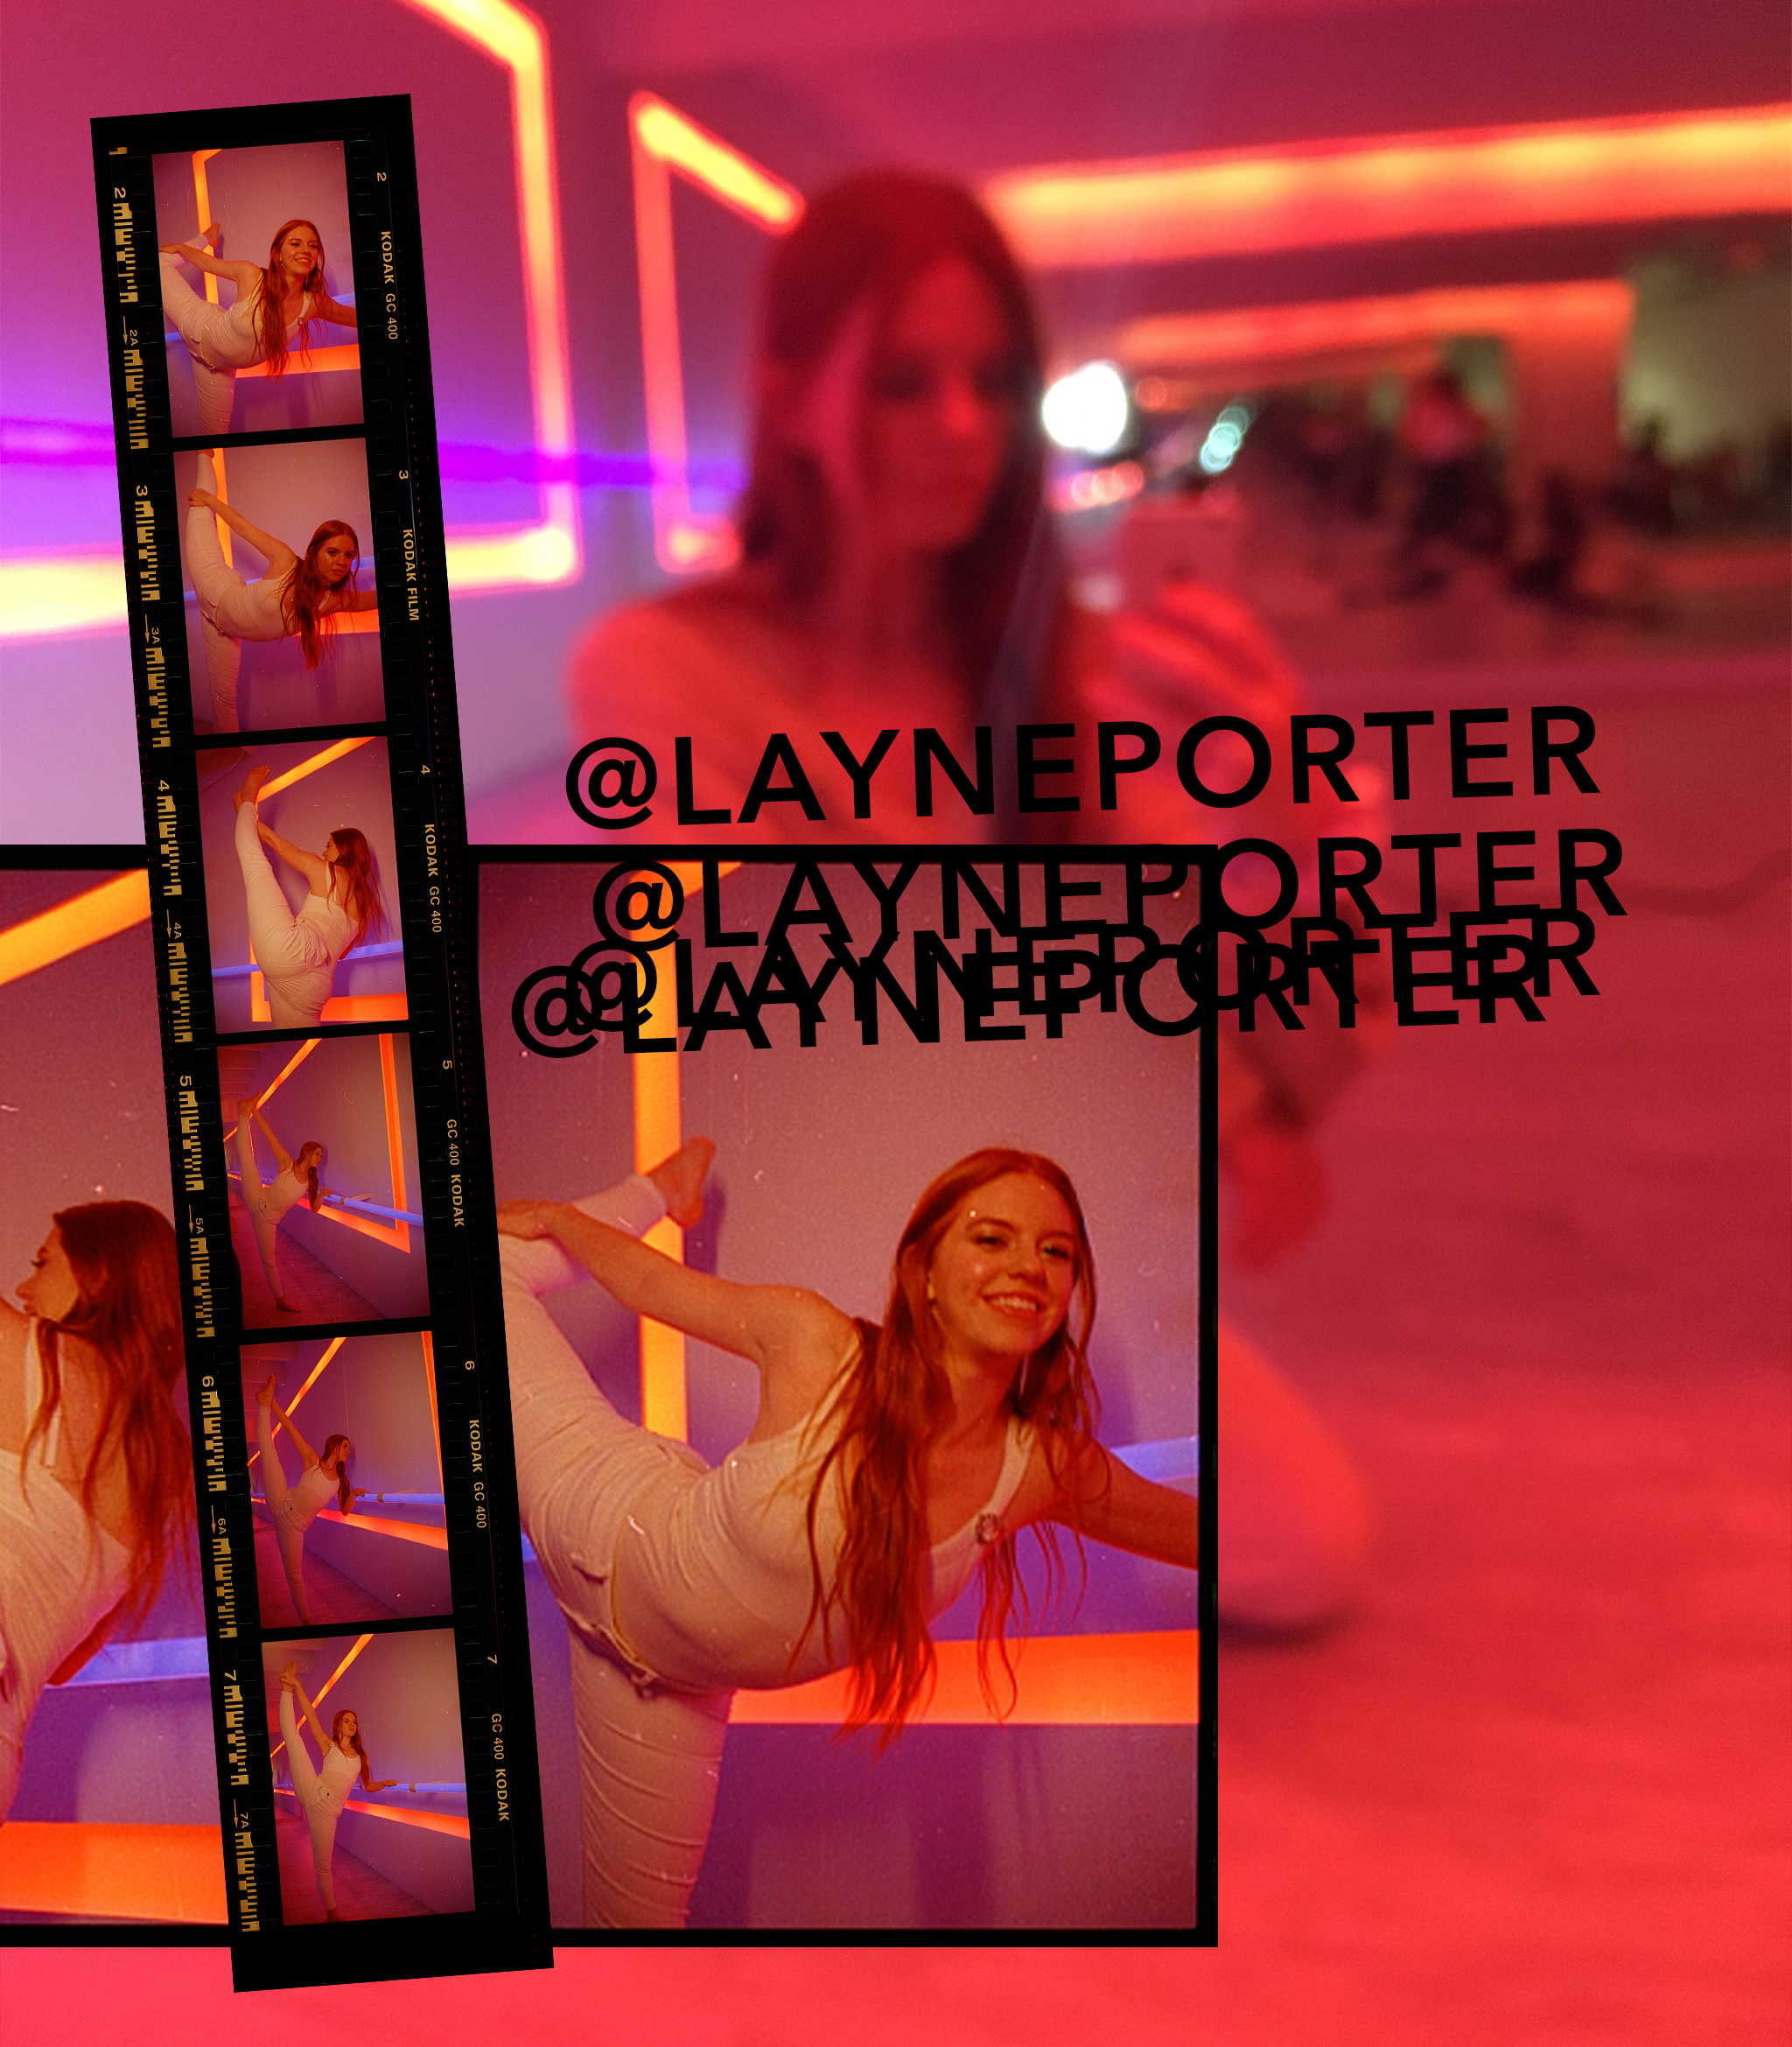 @layneporter instagram handle & film strips